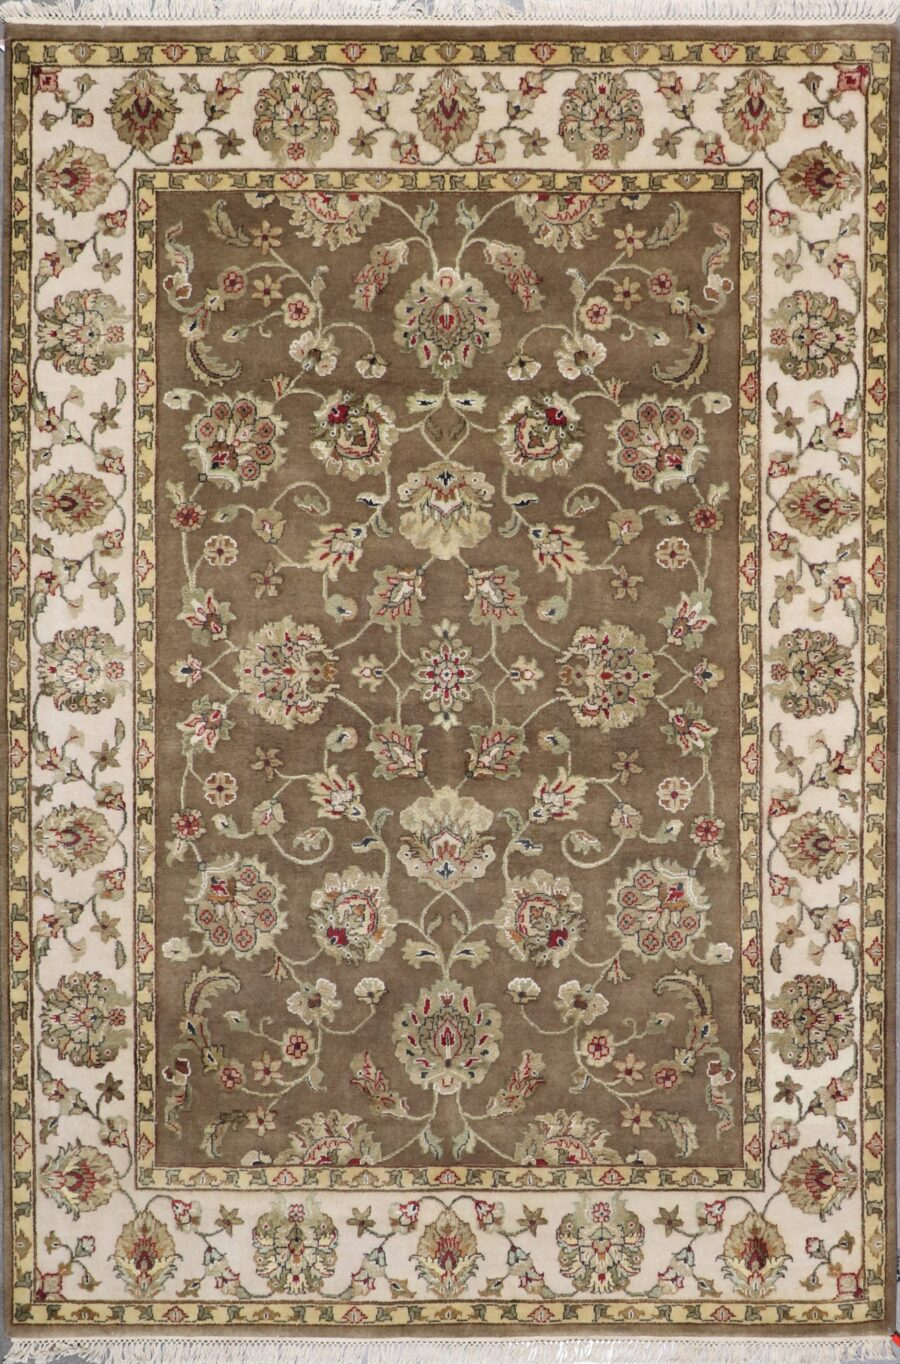 """6'1""""x8'10"""" Traditional Tan Wool&silk Hand-Knotted Rug - Direct Rug Import   Rugs in Chicago, Indiana,South Bend,Granger"""